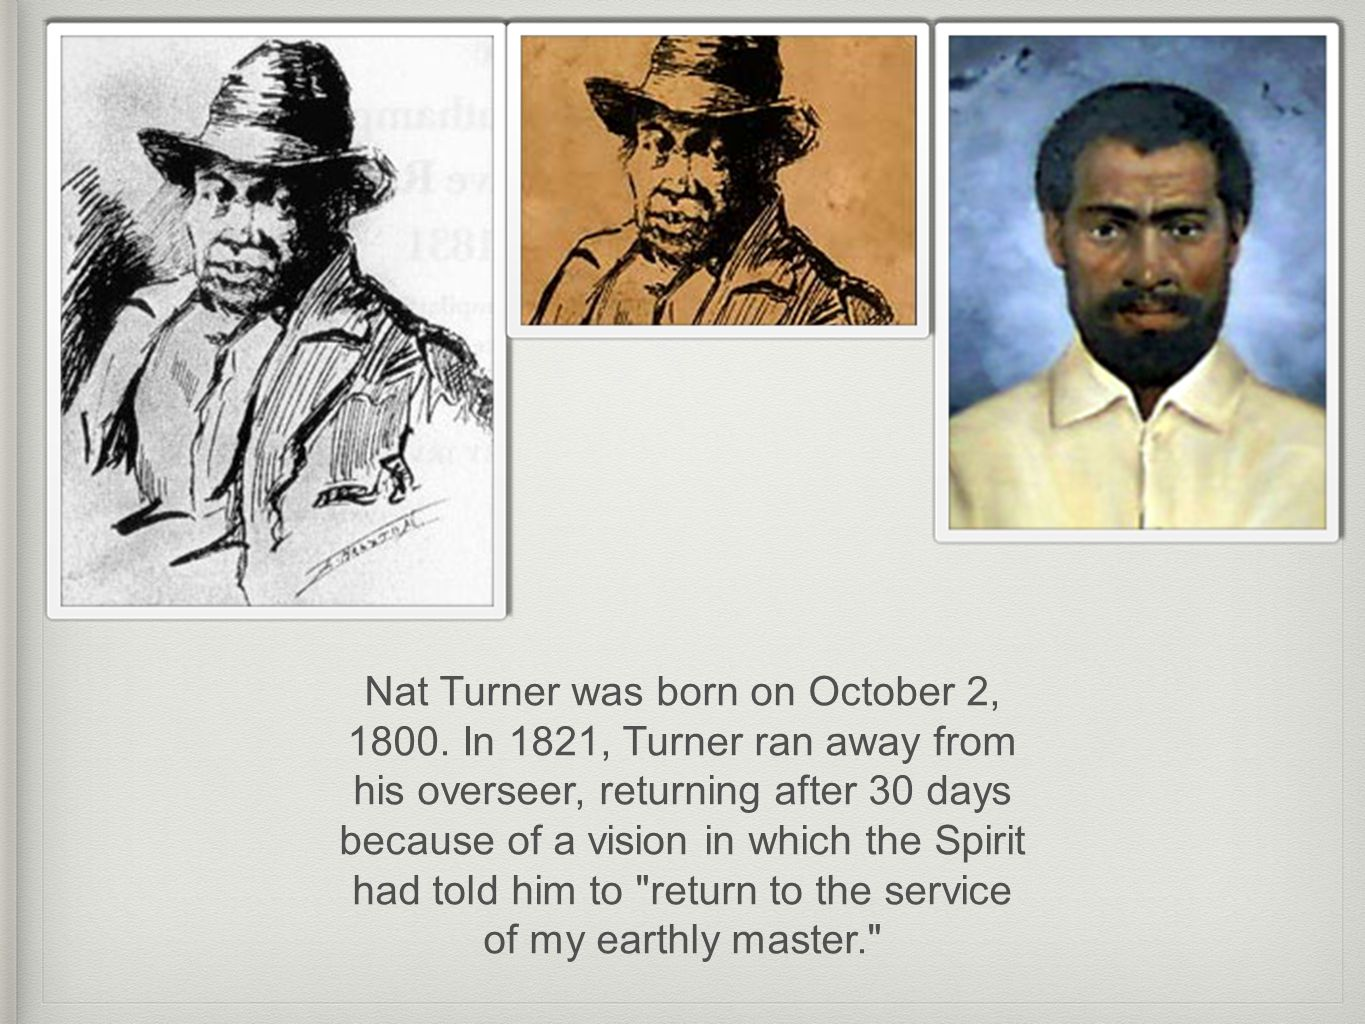 Nat Turner had two more visions leading him to believe he was being held responsible and had to kill the white men to defend the black people s spirits.